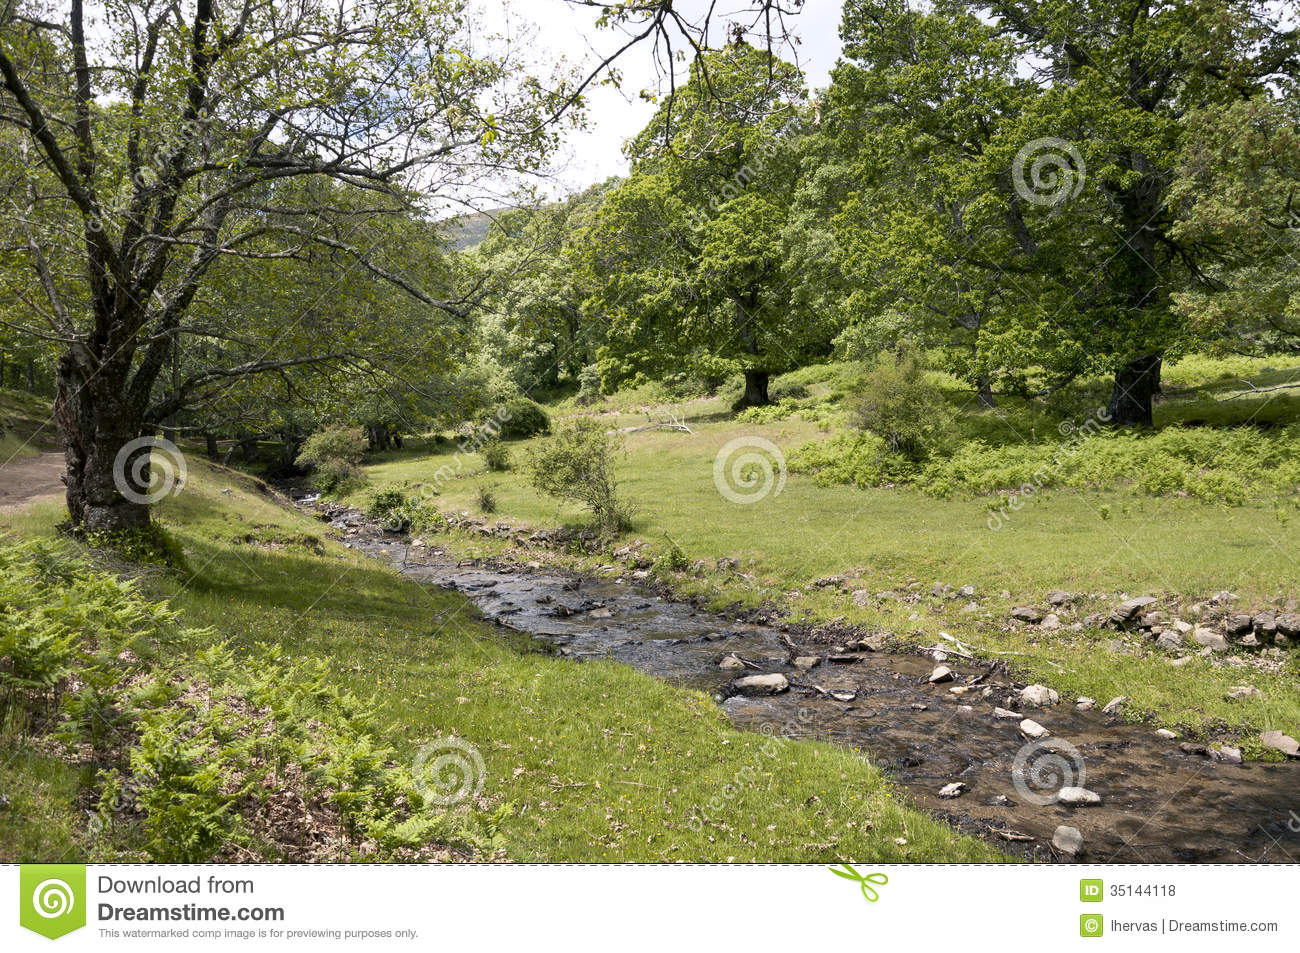 Small stream in Iruelas Valley Natural Park, Avila, Spain.